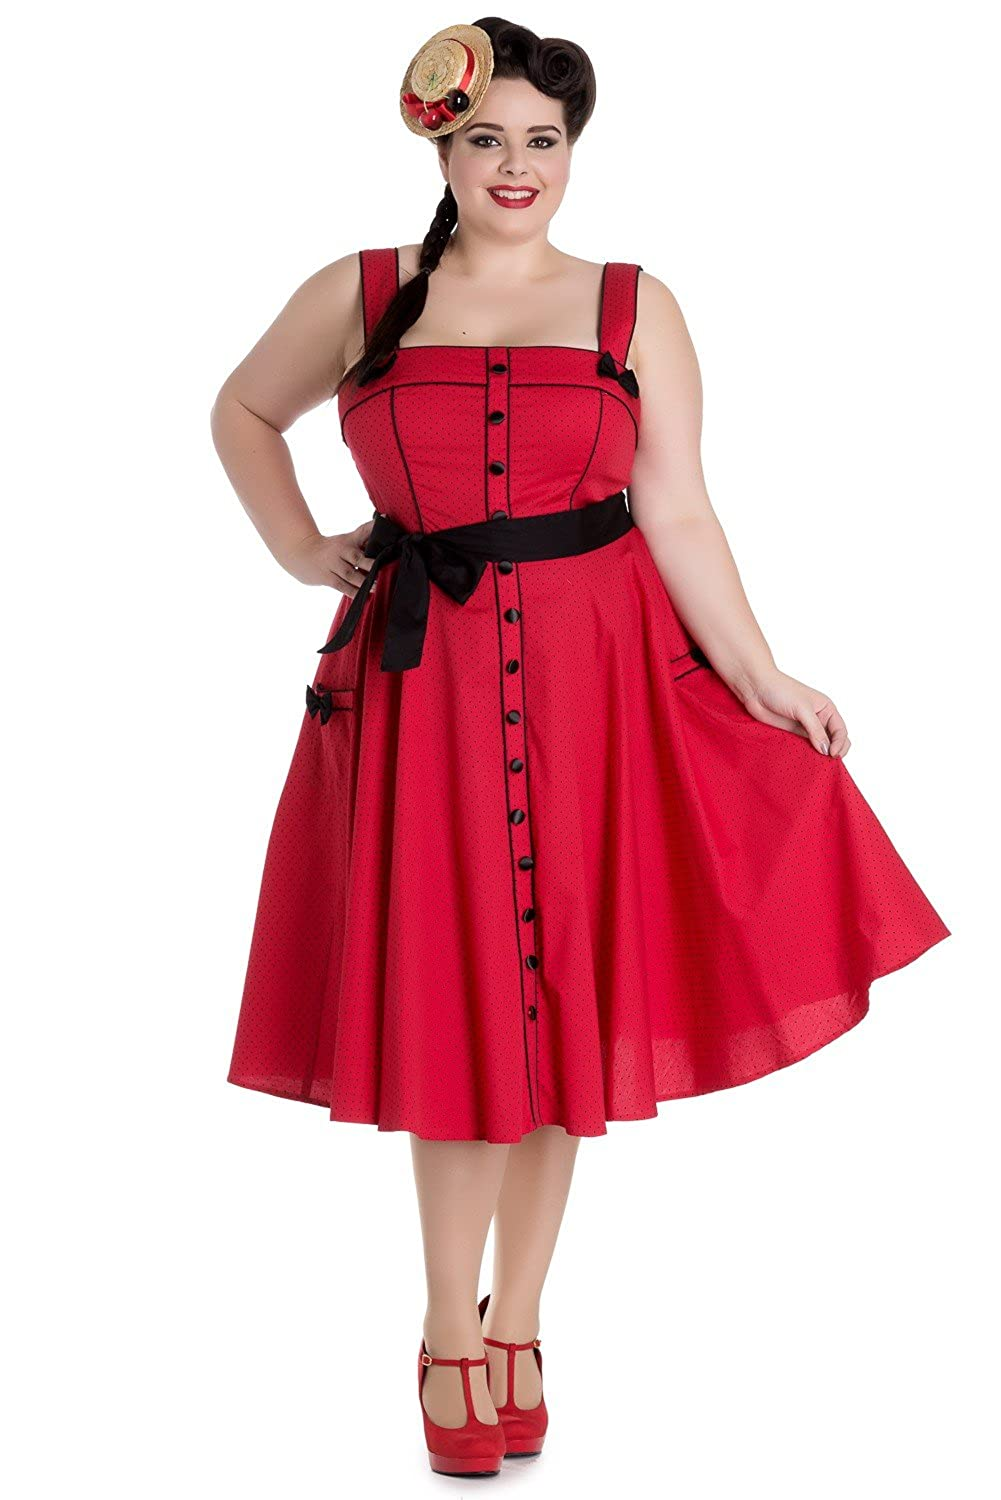 1950s Plus Size Dresses, Clothing and Costumes Hell Bunny Martie Rockabilly Retro 1950s Dress $29.99 AT vintagedancer.com